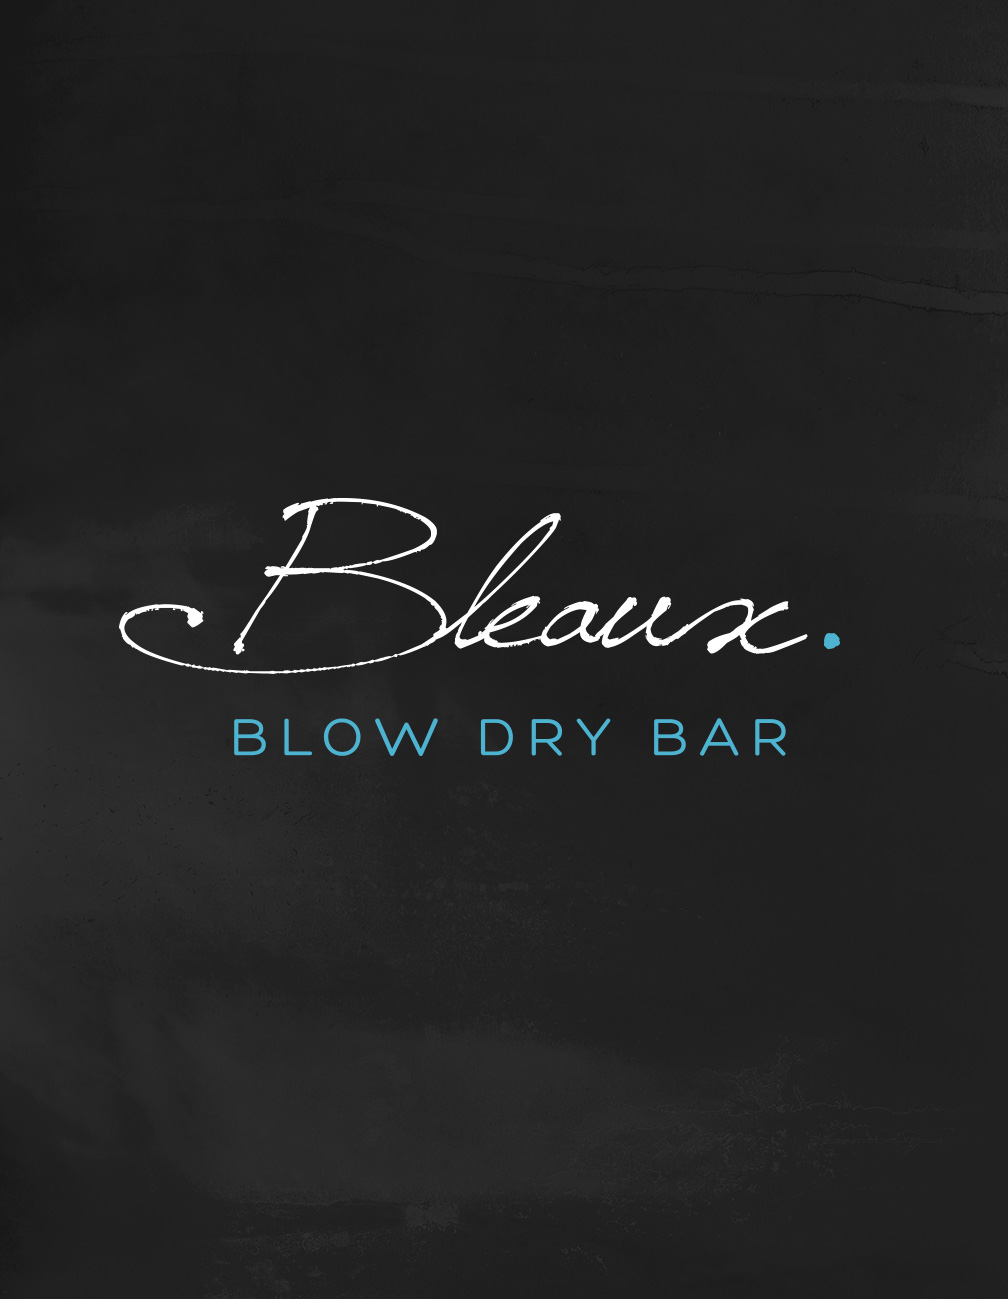 Bleaux Blow Dry Bar Identity